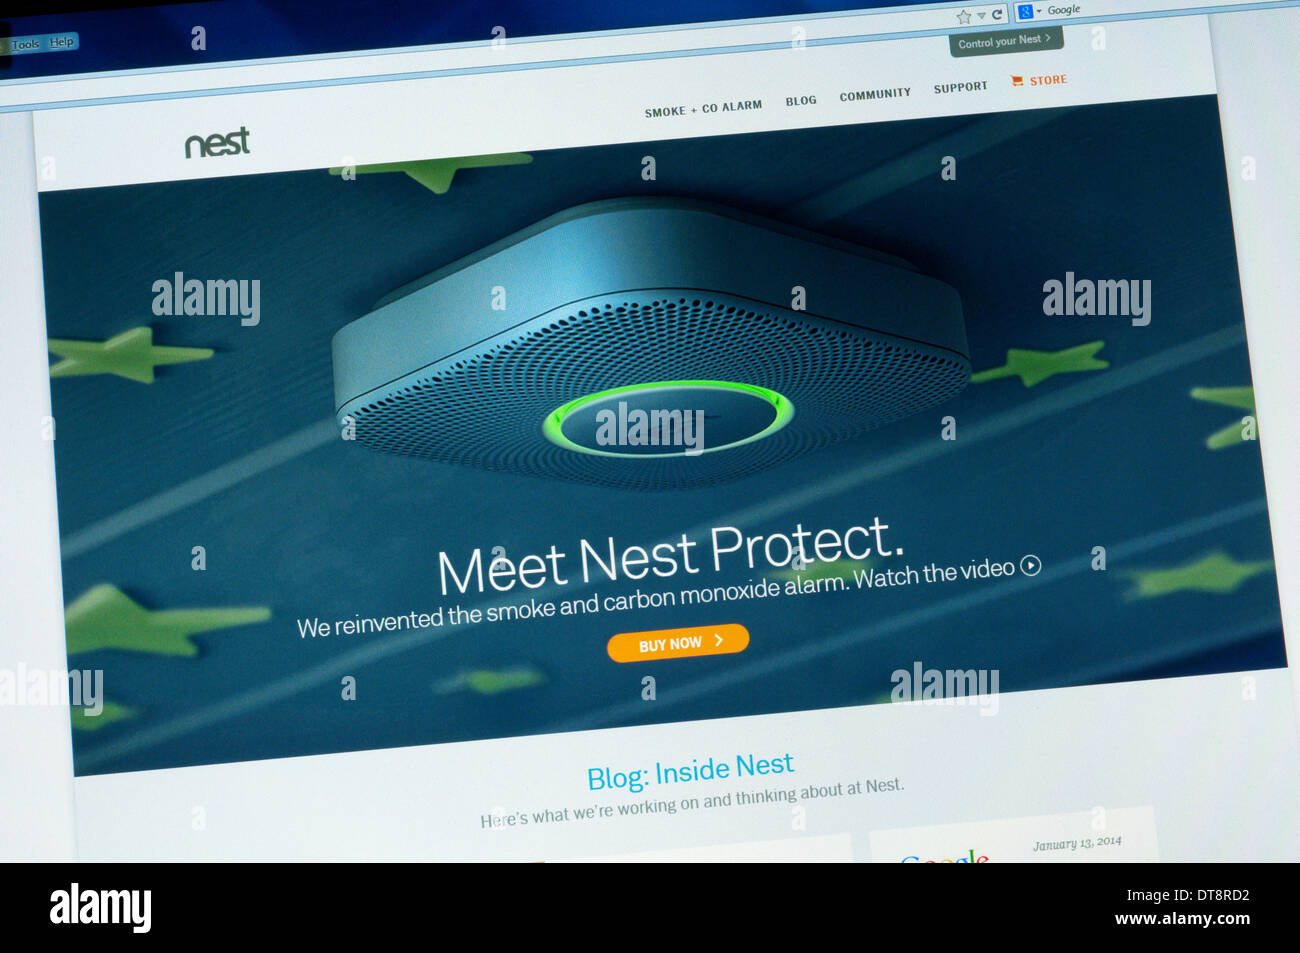 The home page of the web site for Nest smoke and carbon monoxide alarms. - Stock Image